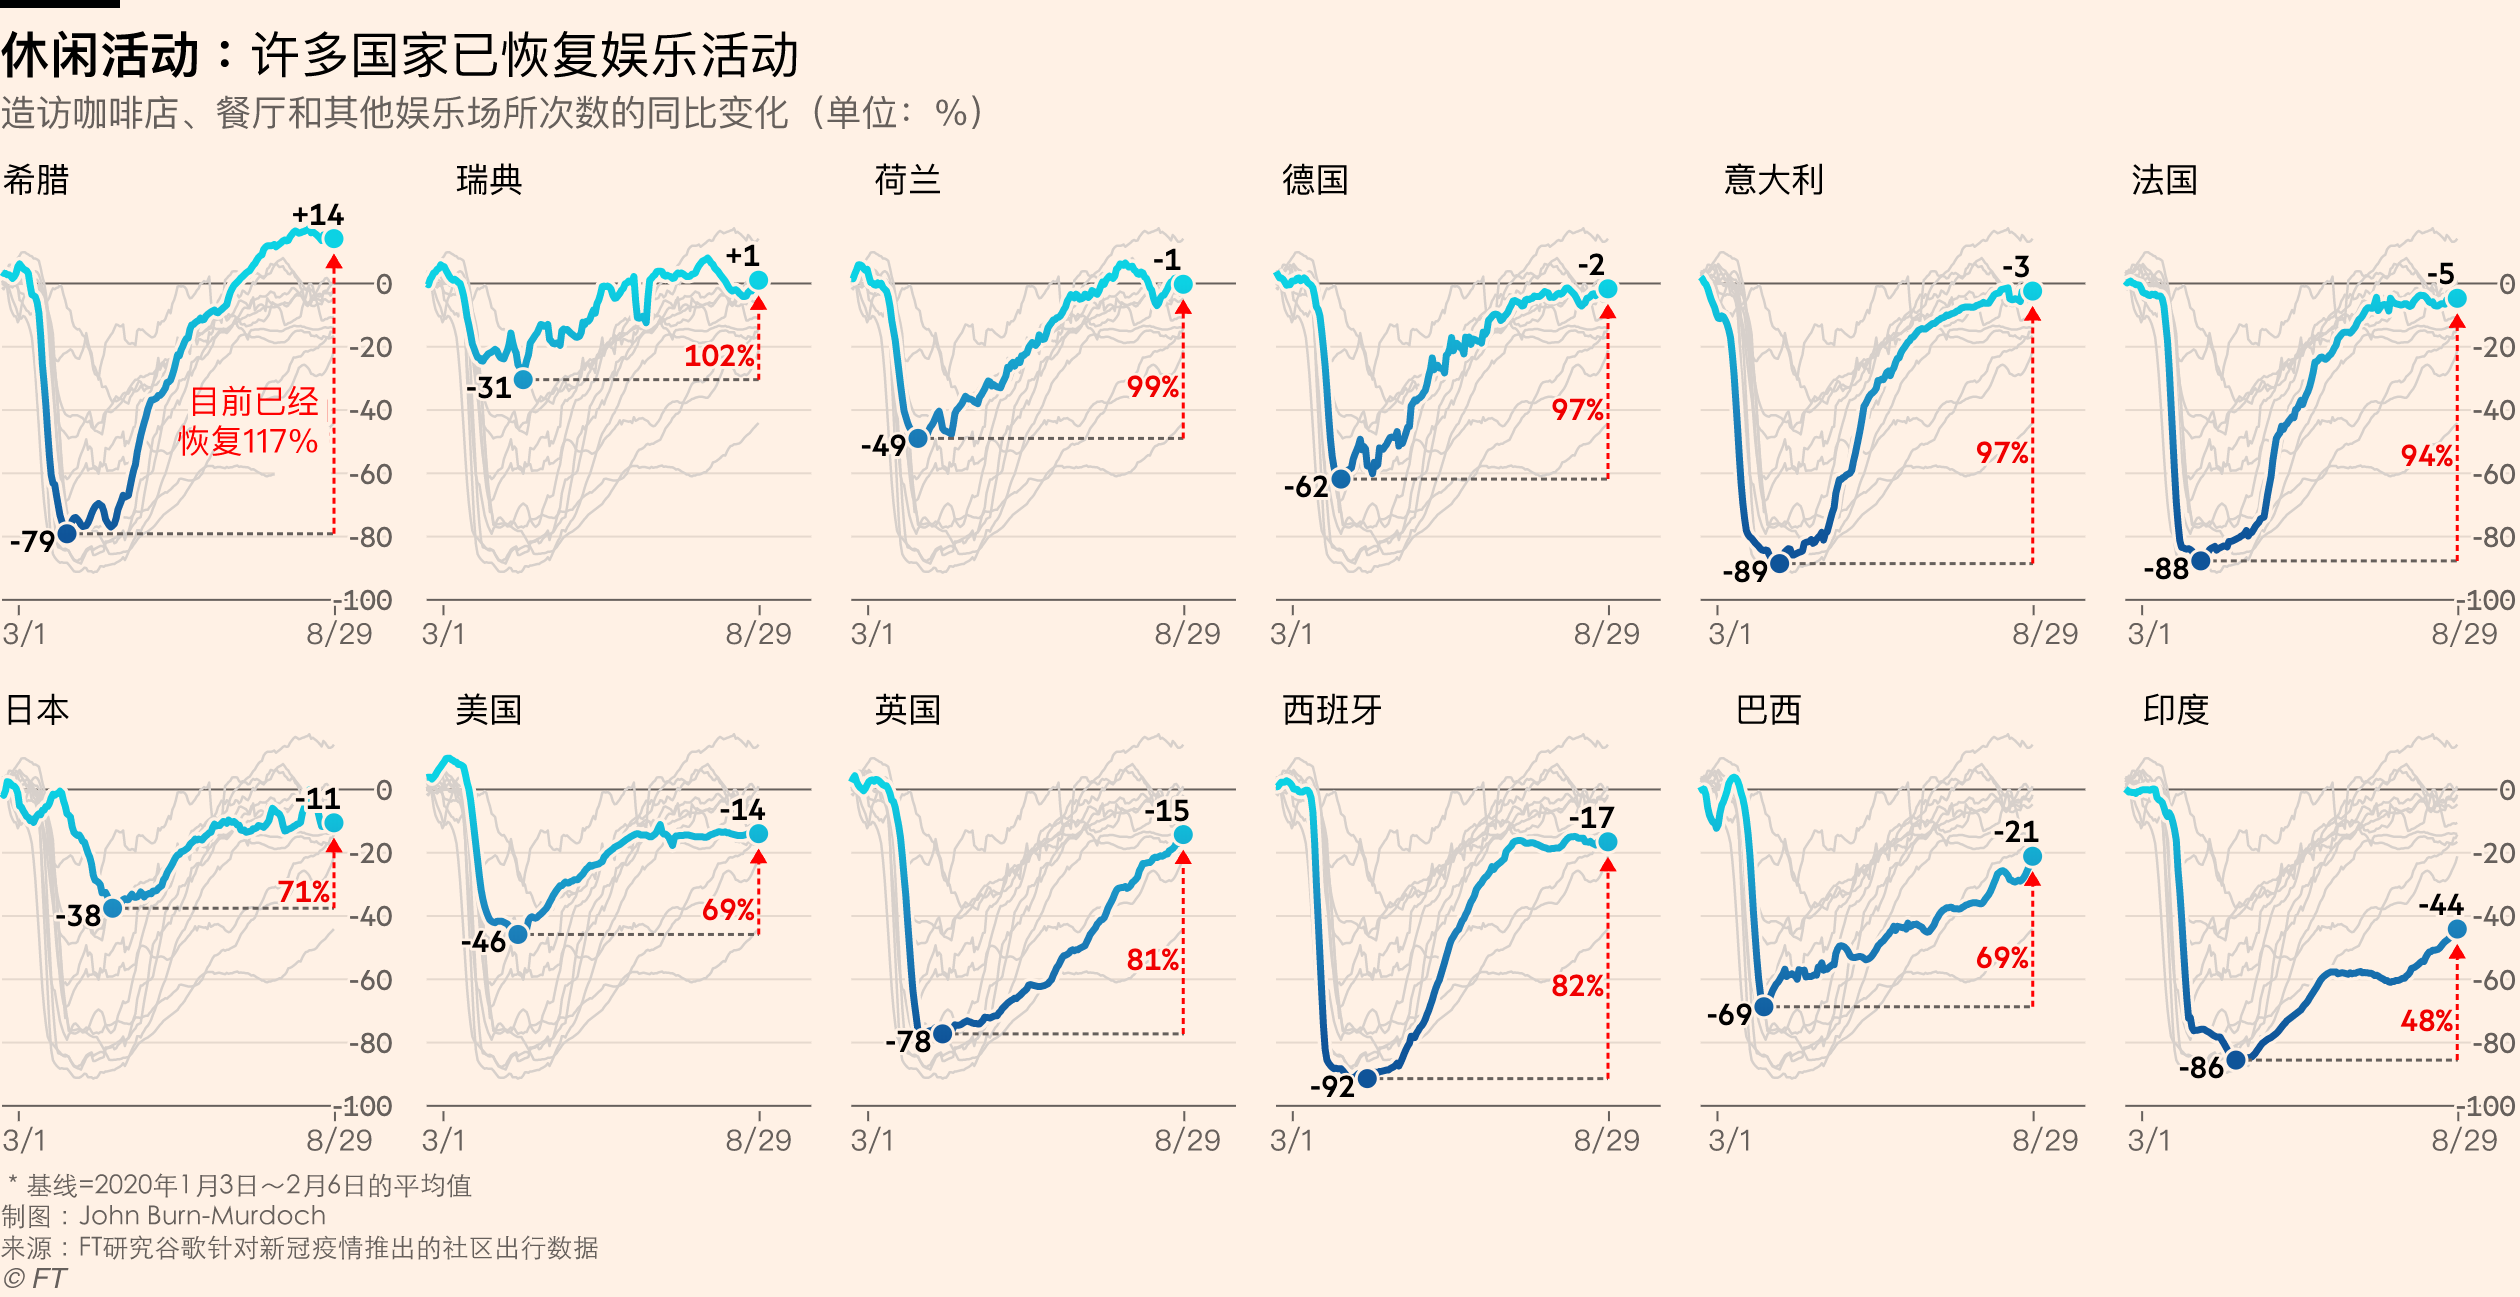 FT Global Economic Activity index -- leisure